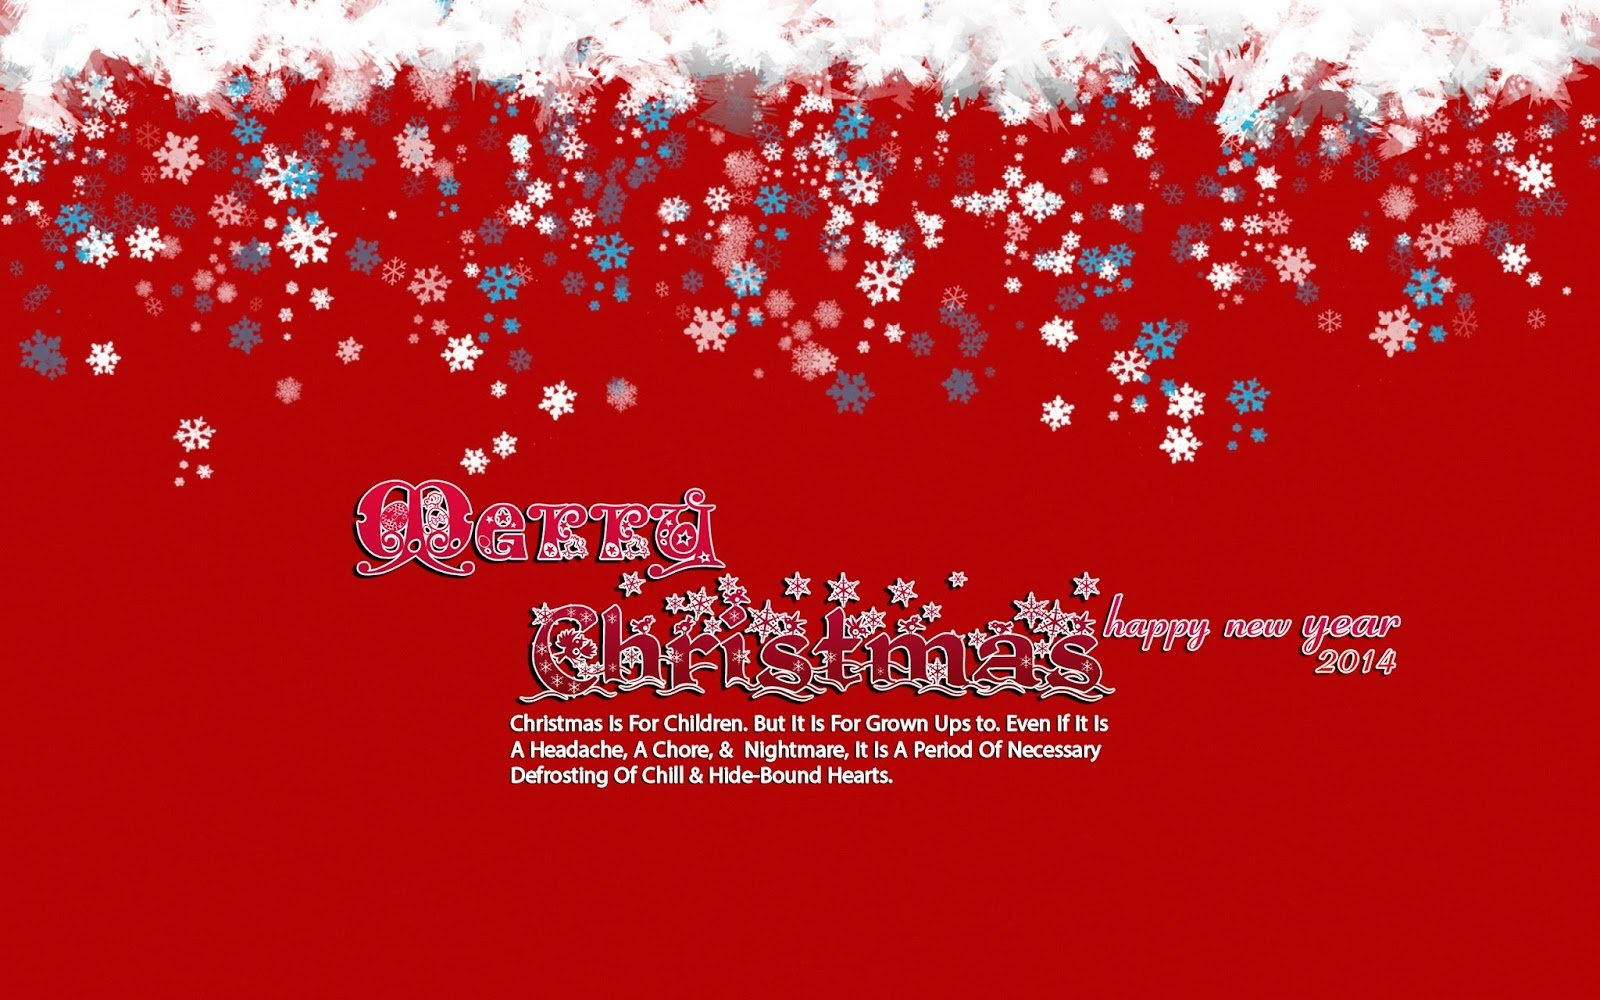 Christmas Quotes And Sayings: Christmas Quotes And Sayings. QuotesGram